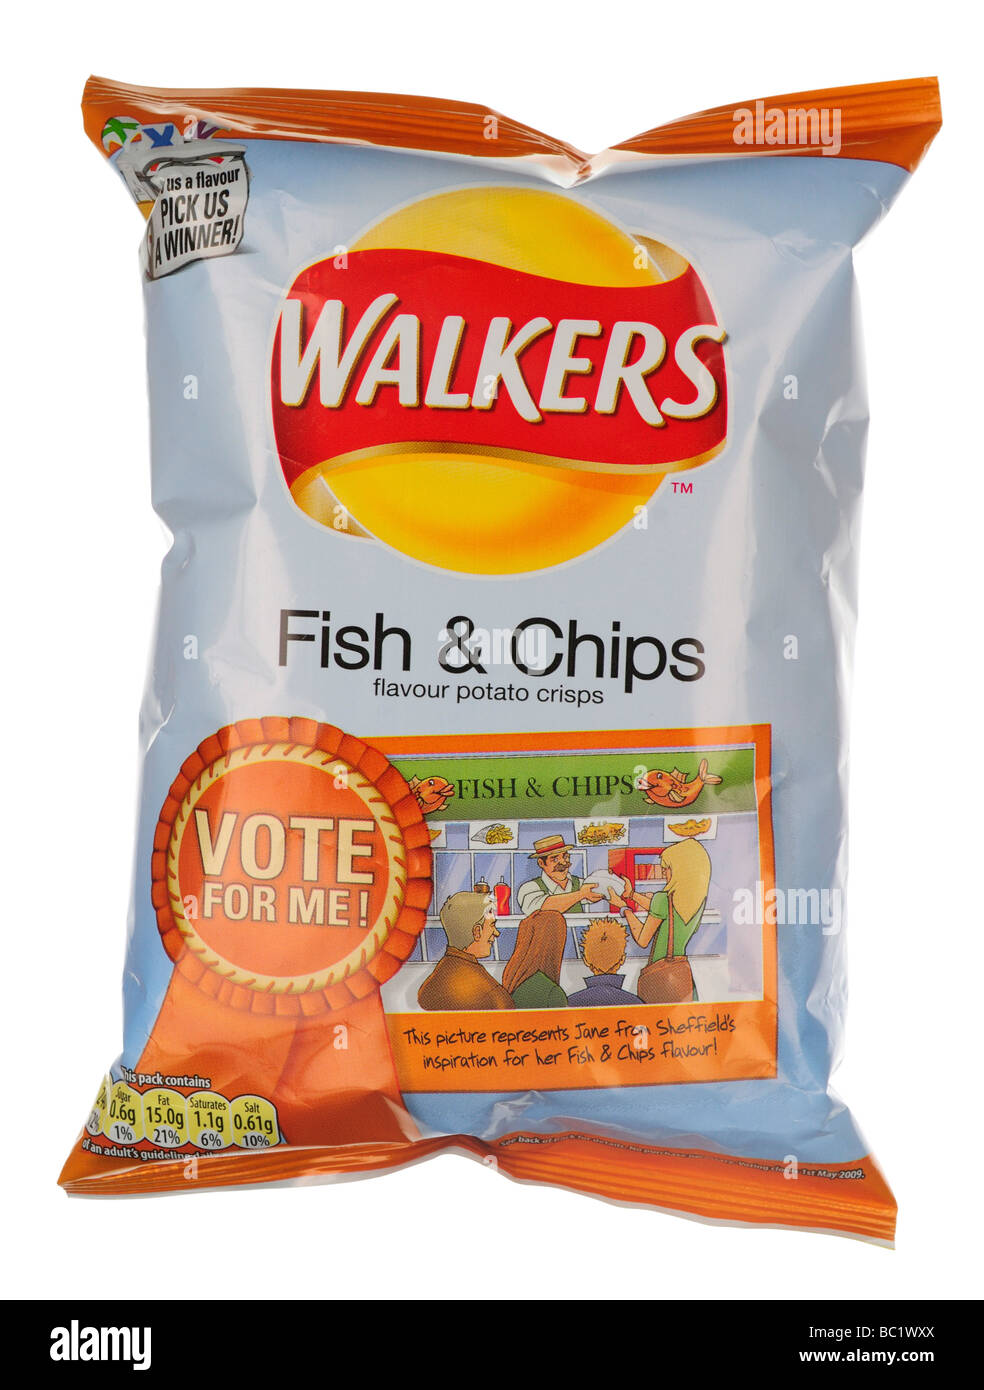 Packet of Walkers Fish Chips Flavour Crisps - Stock Image